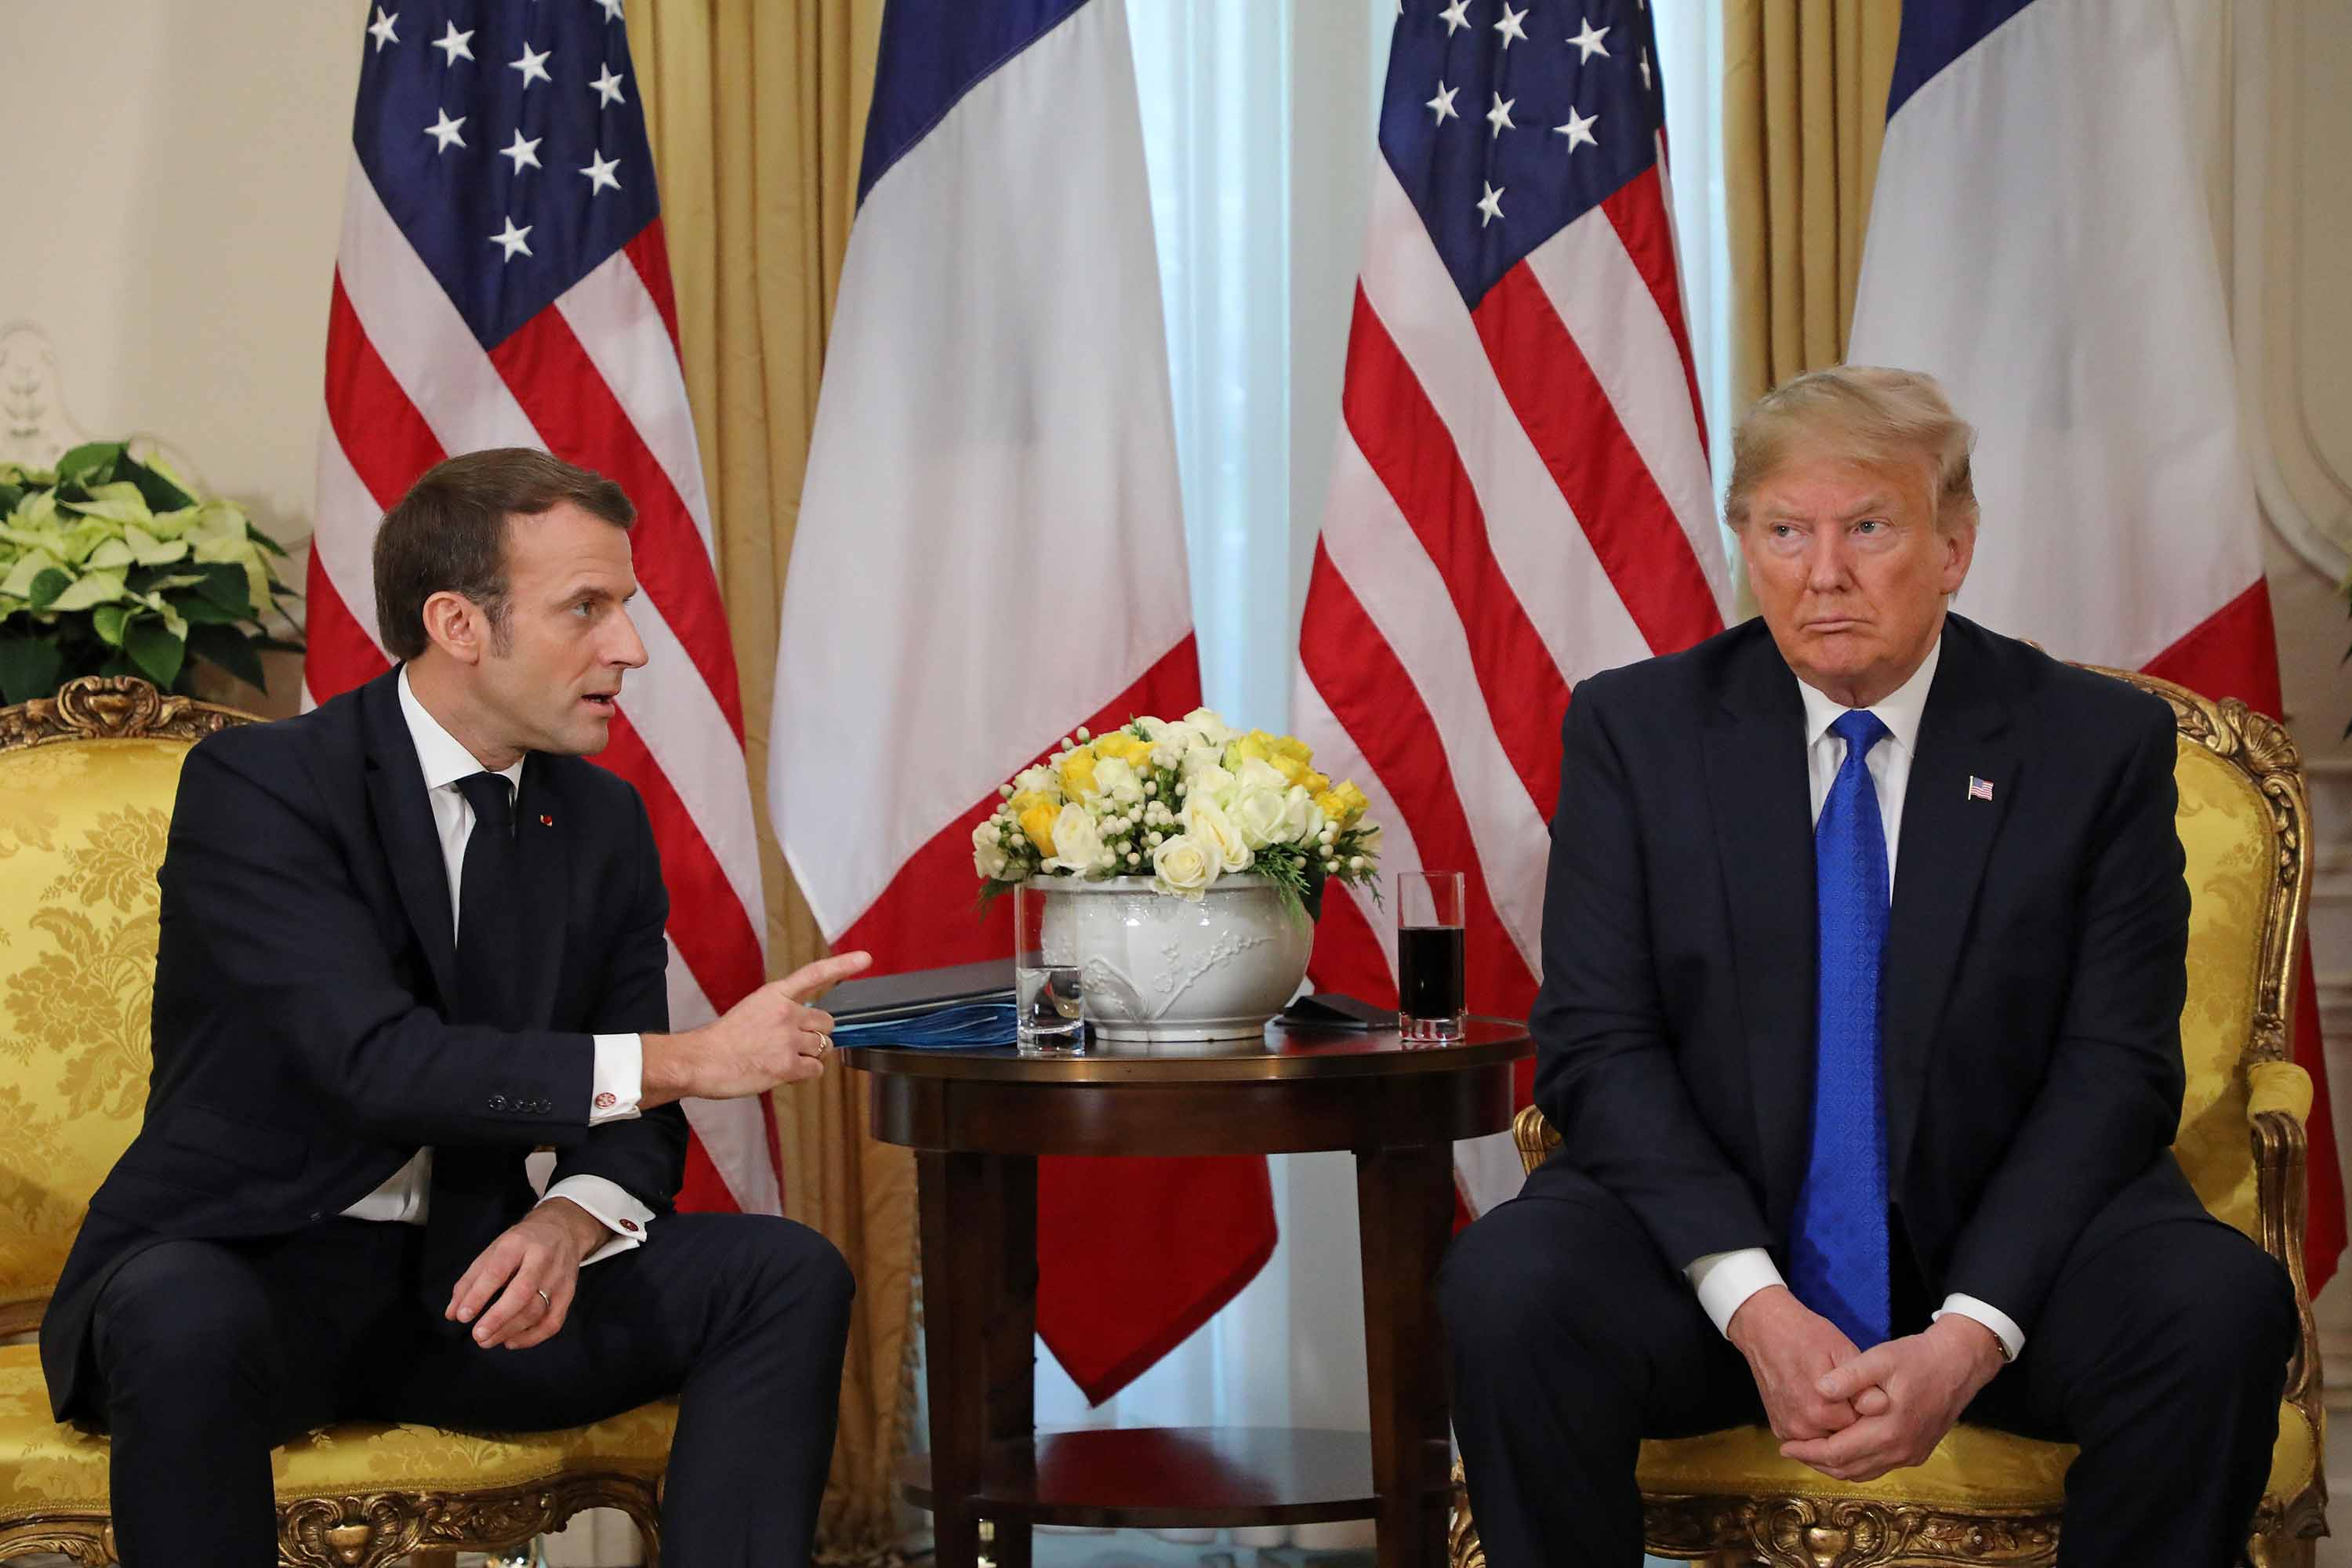 French President Macron and US President Trump give a press conference at Winfield House in London on Tuesday.